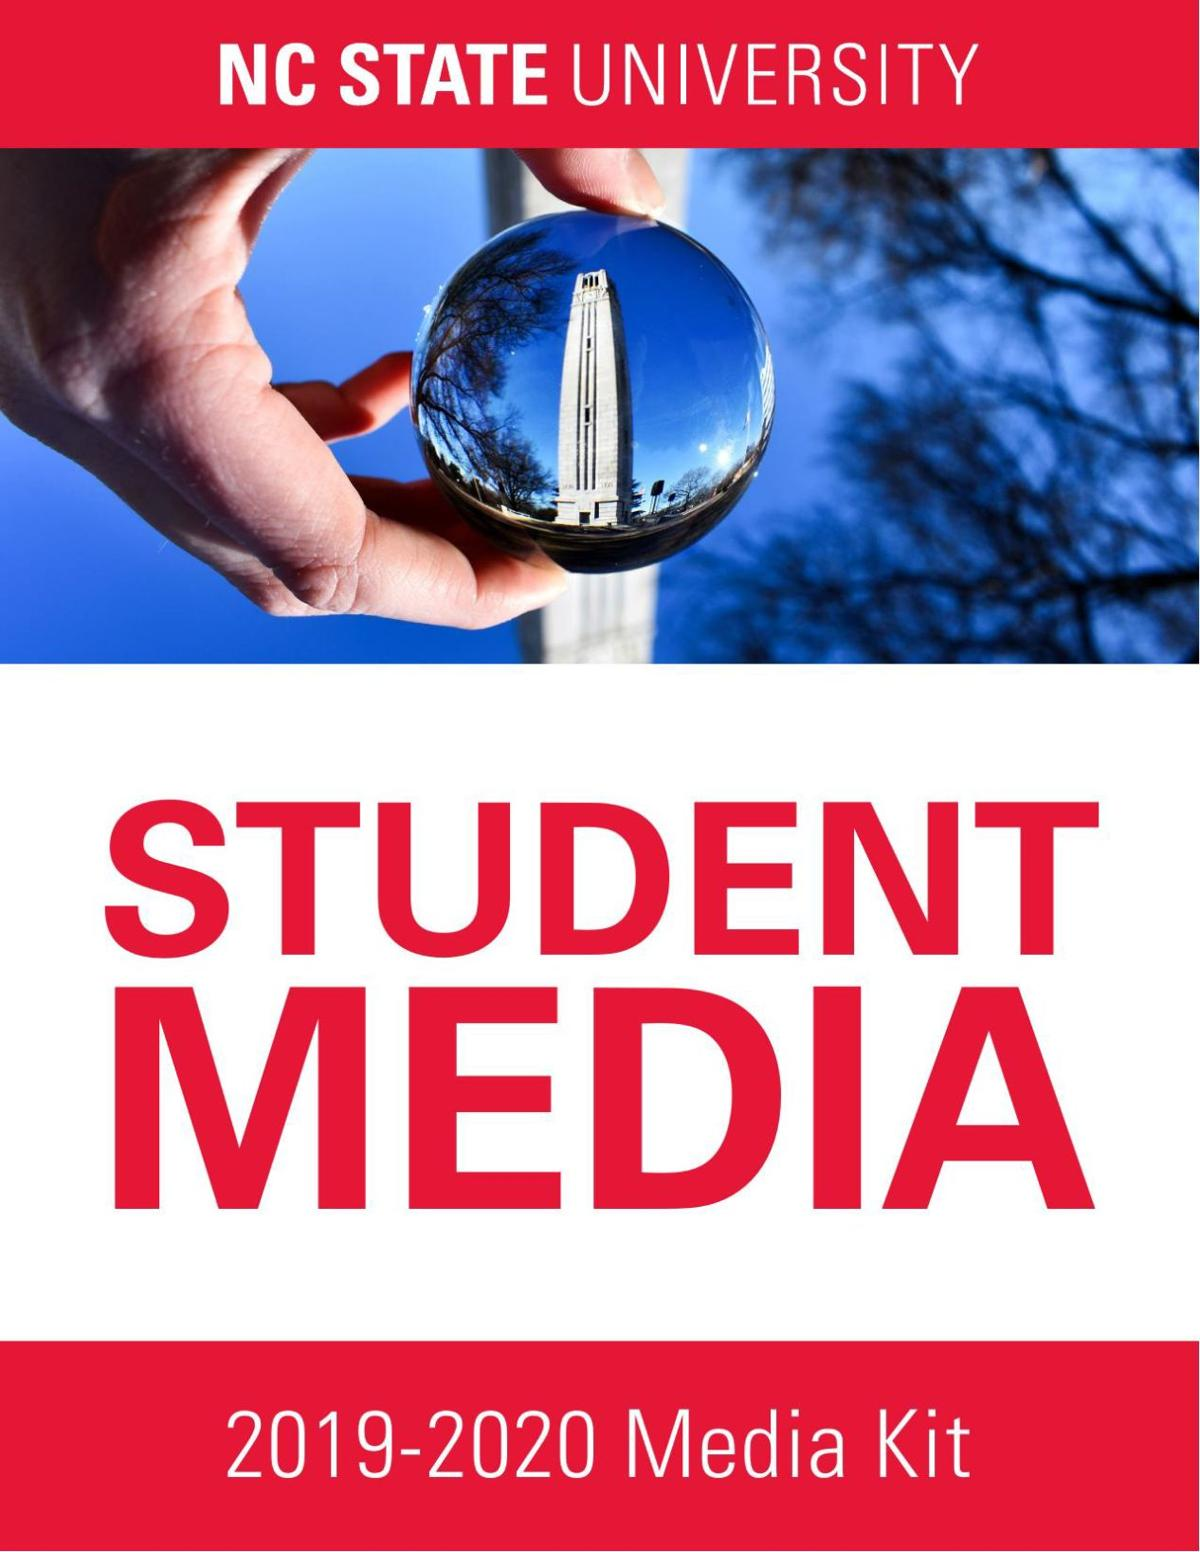 NC State Student Media Rate Card 2019-2020